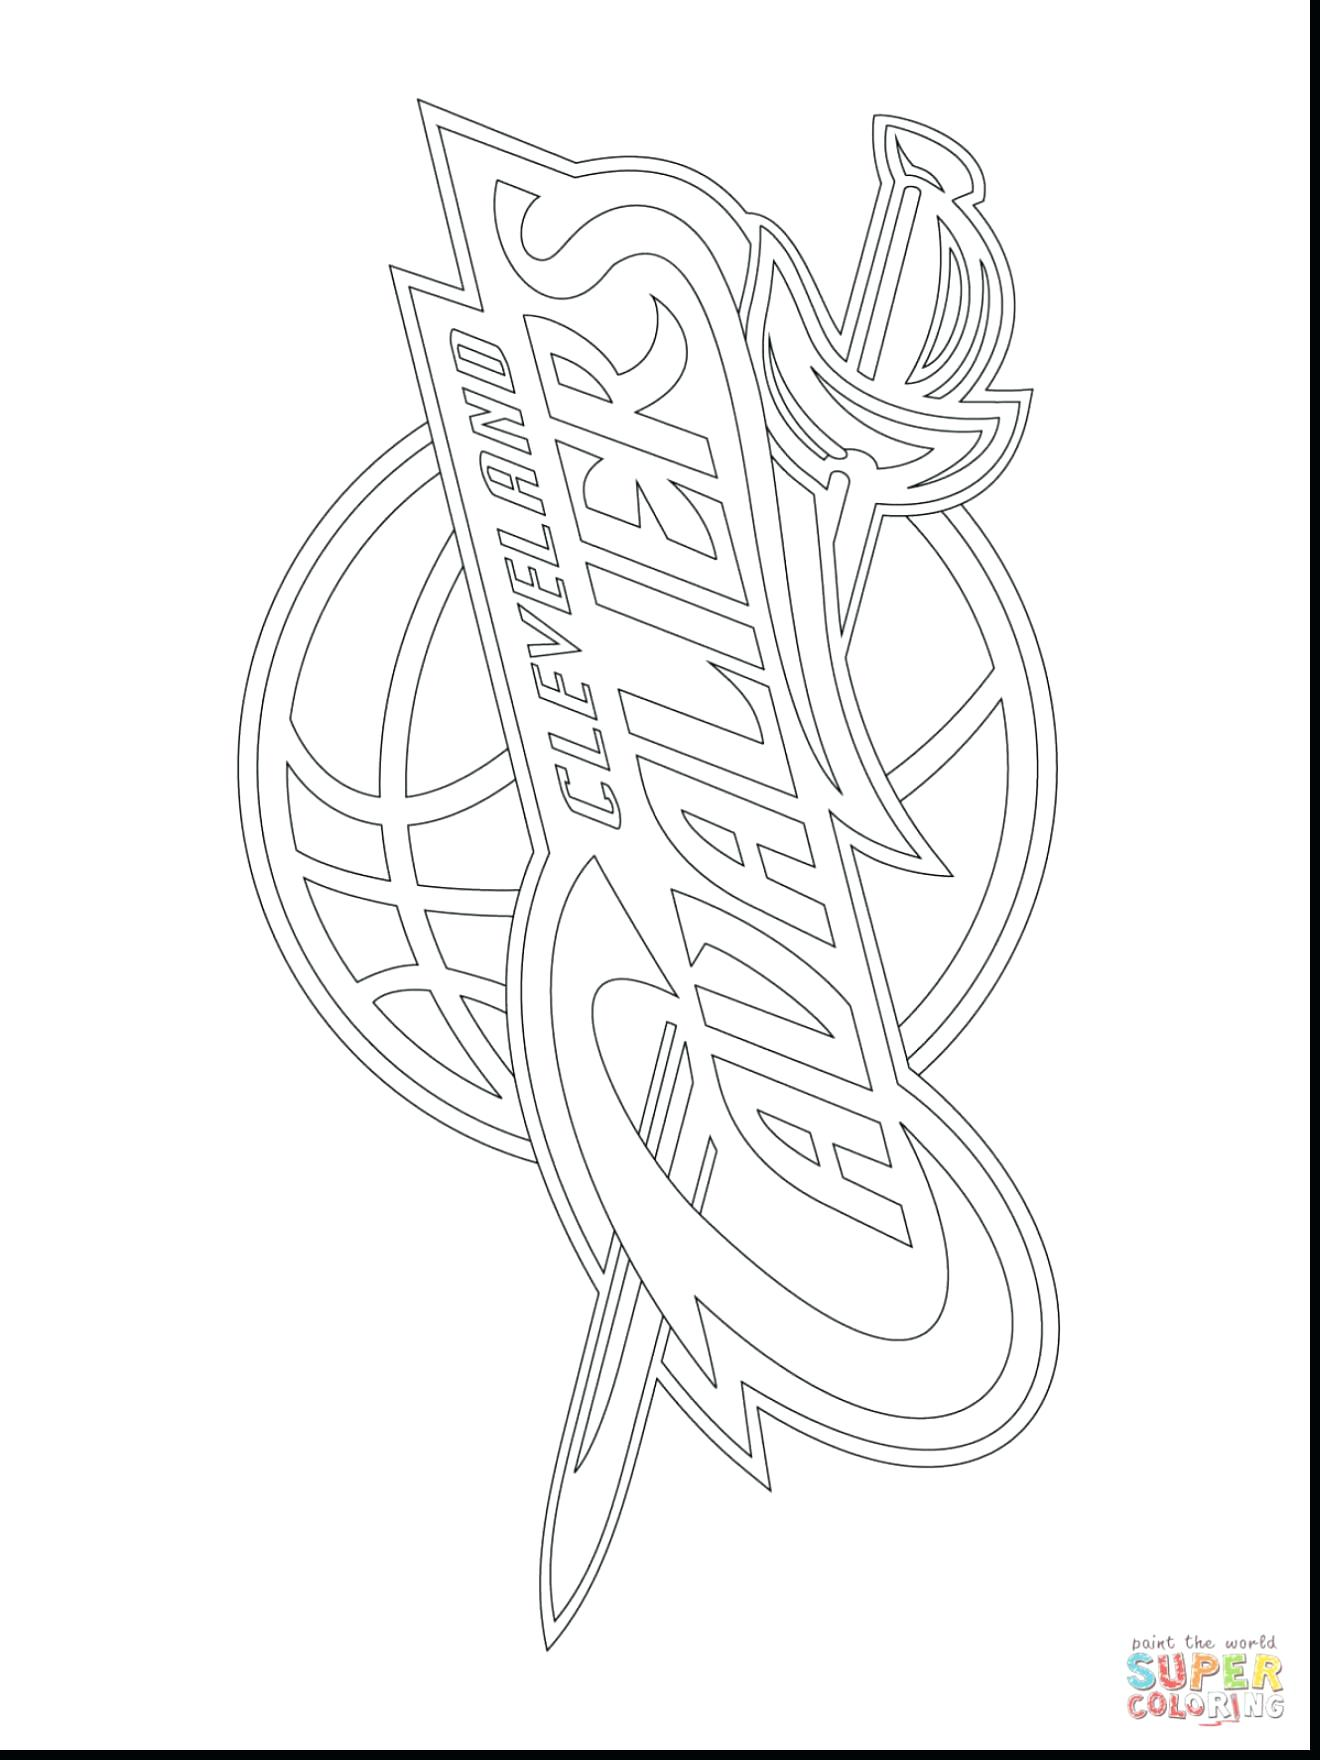 1320x1760 Bulls Coloring Pages Lovely Skyline Drawing At Of Bulls Coloring